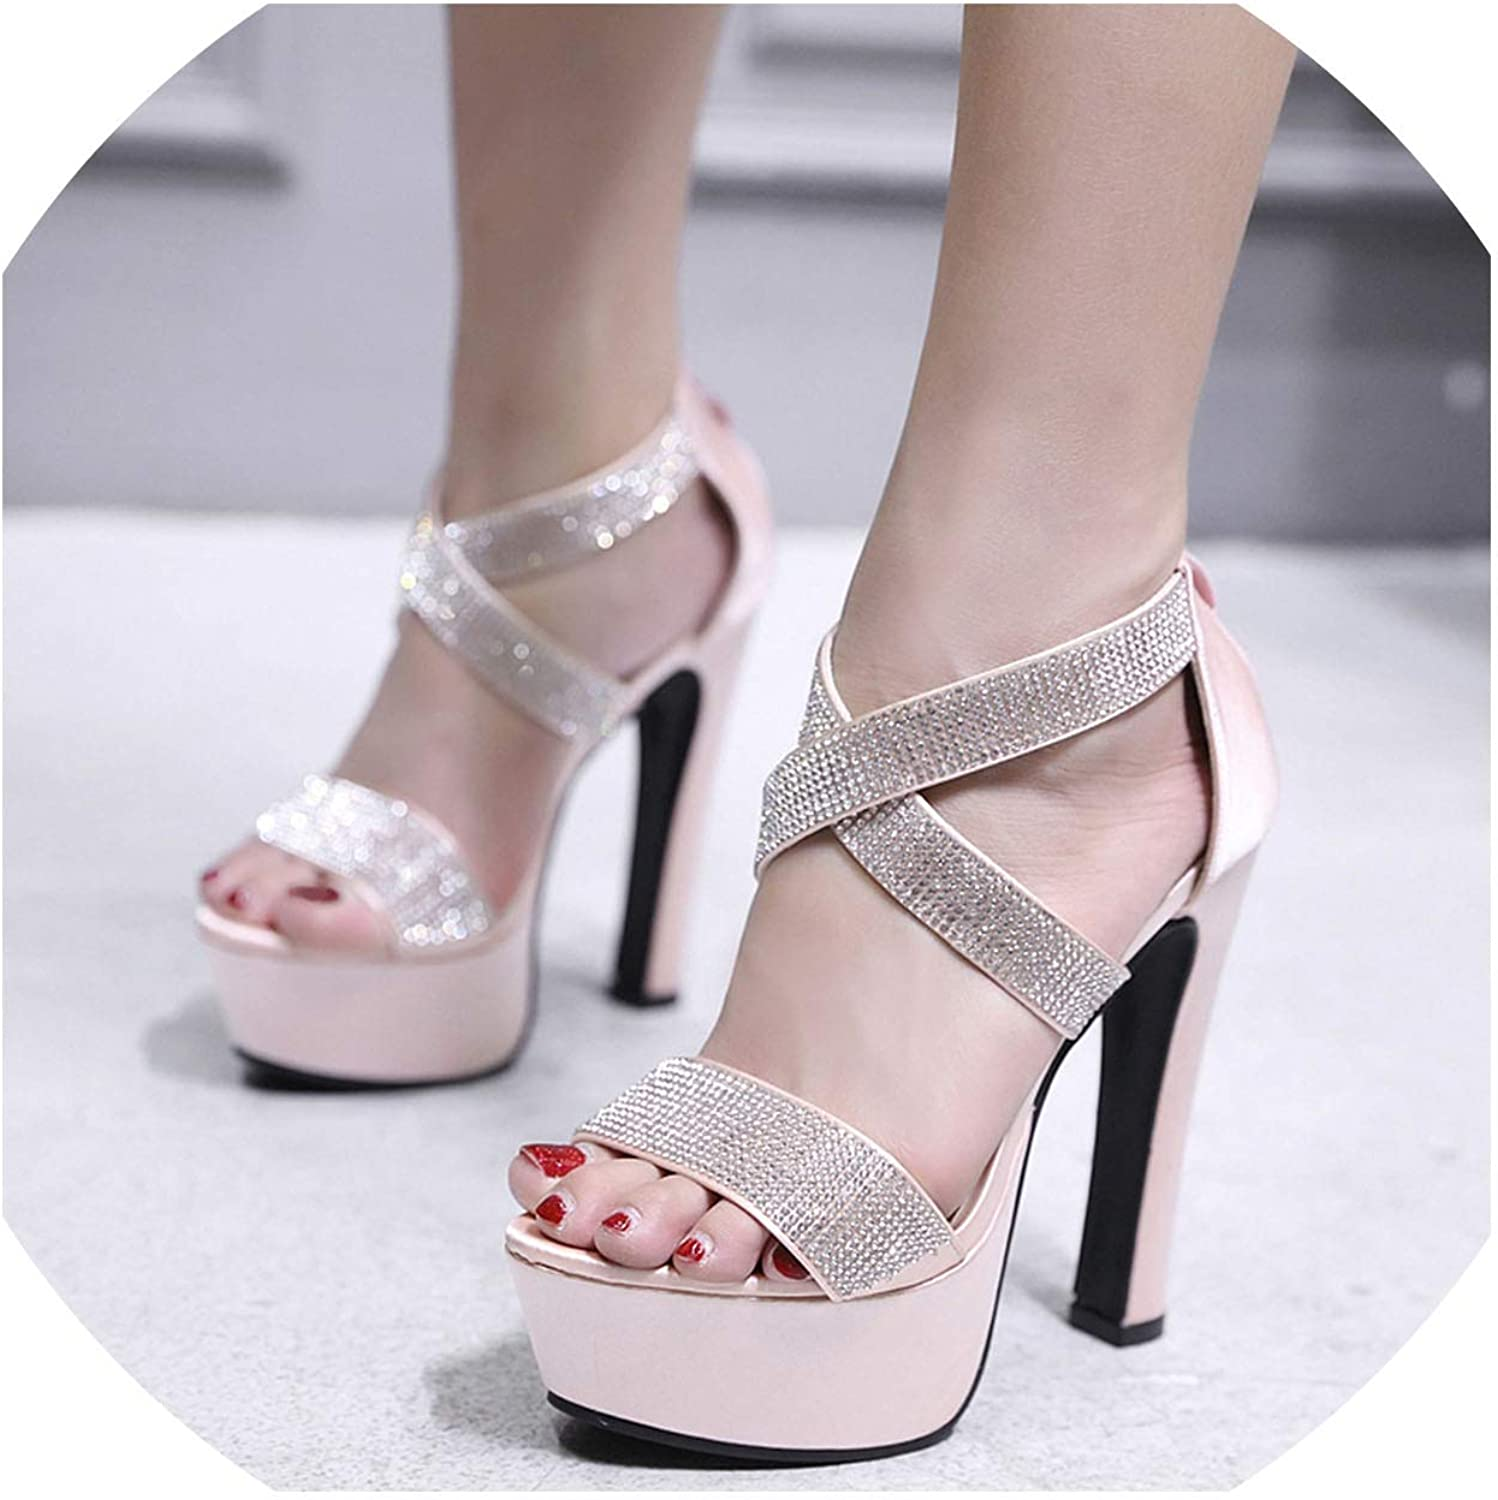 Platform Sandals High Heel Summer Wedding shoes Women Gladiator Platform Sandal